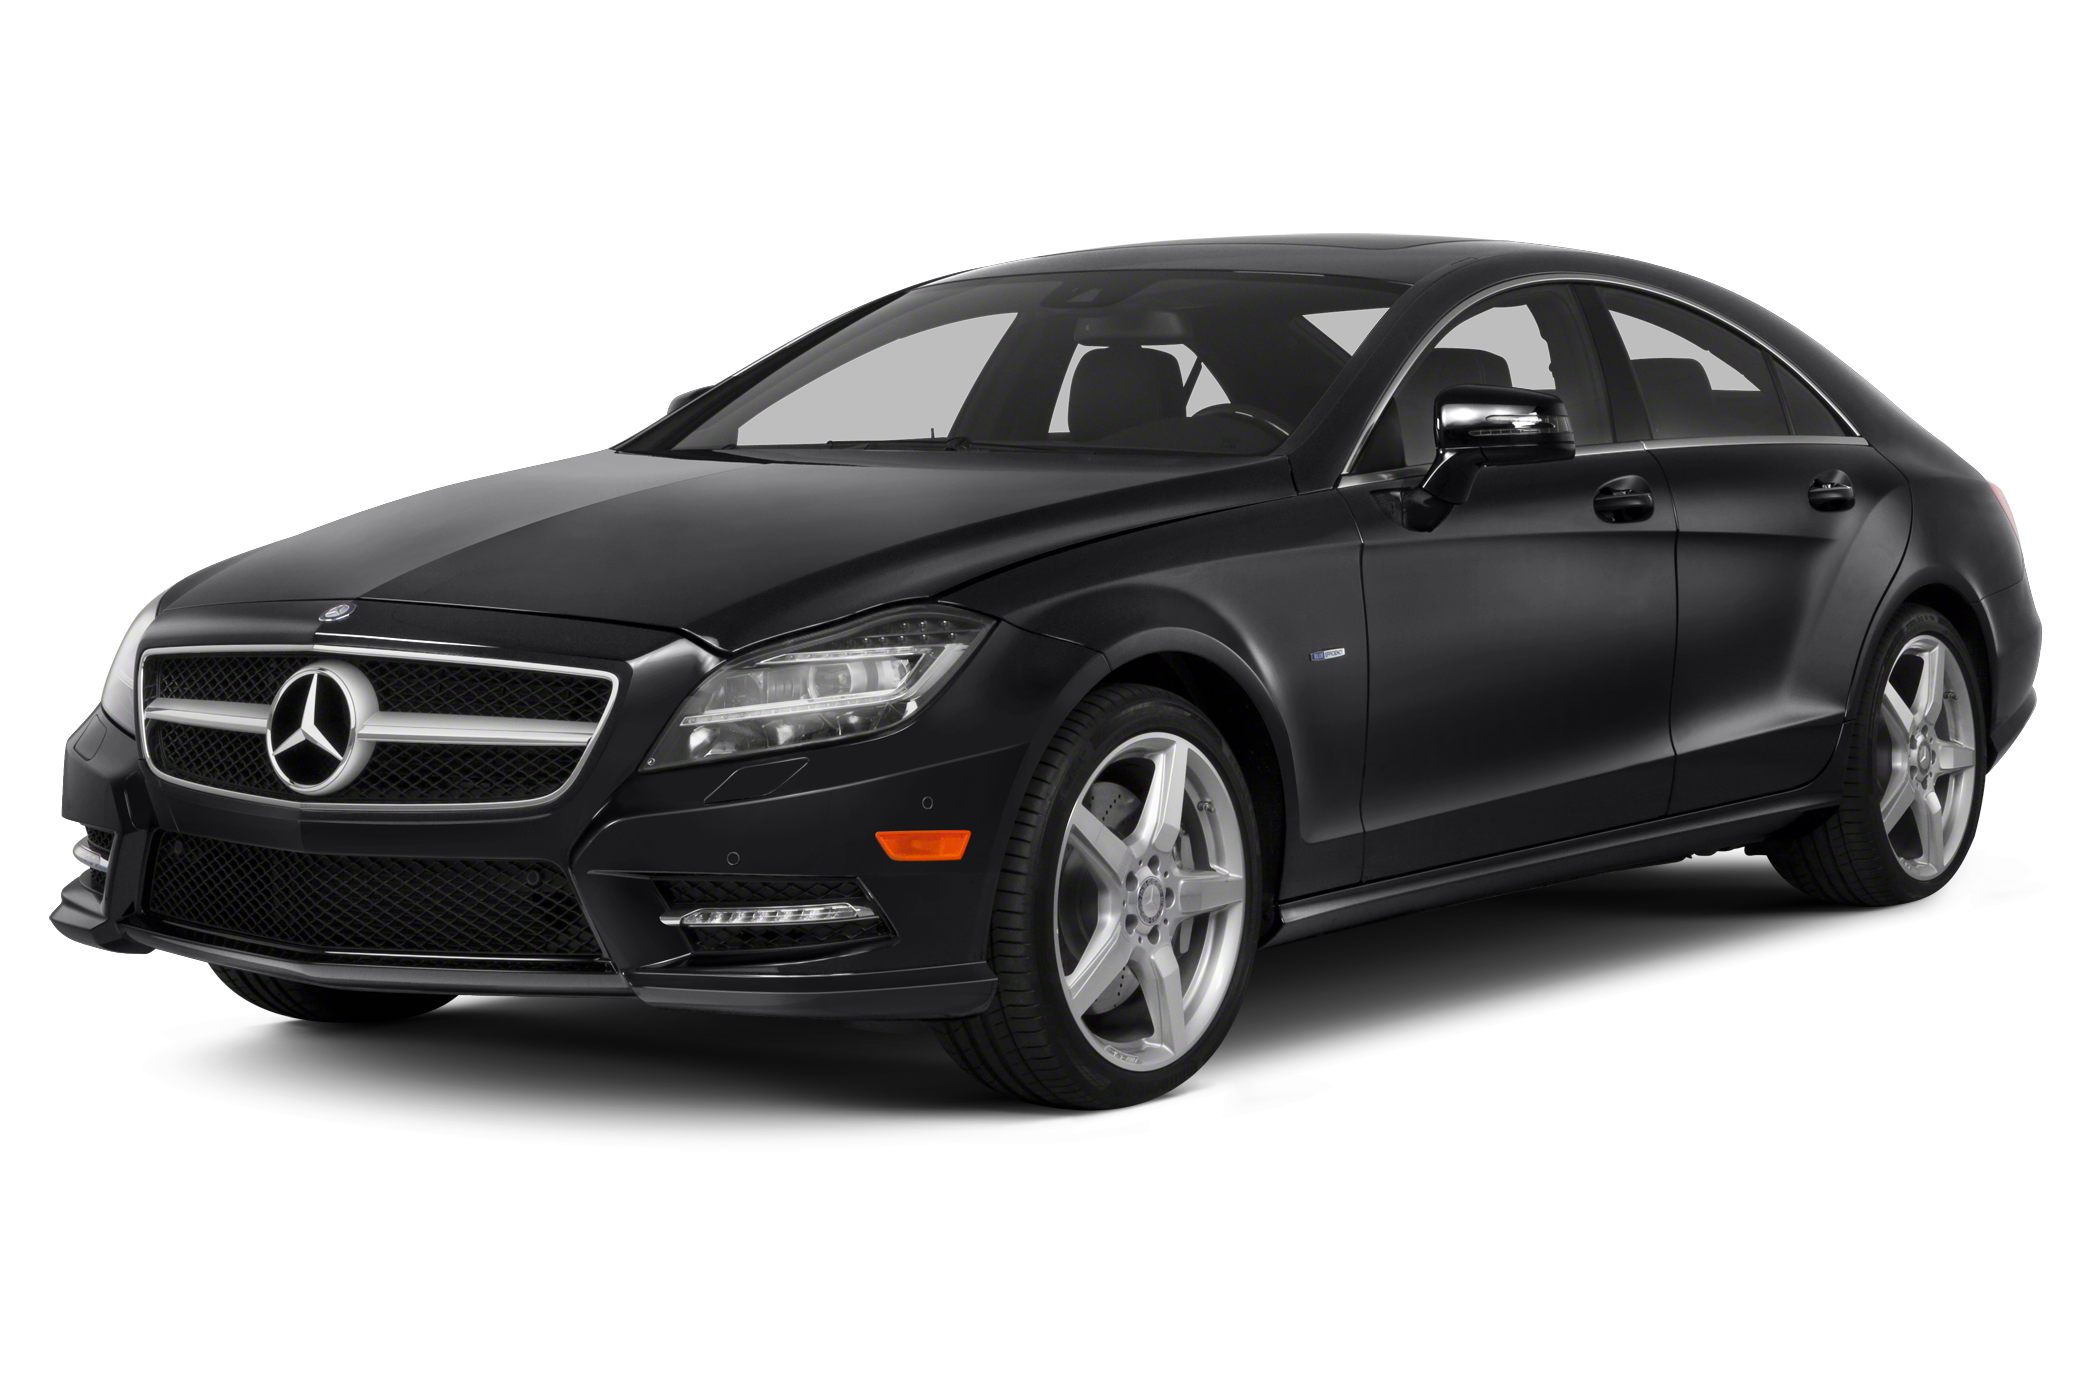 2014 Mercedes-Benz CLS-Class CLS550 Sedan for sale in Tulsa for $65,000 with 18,109 miles.